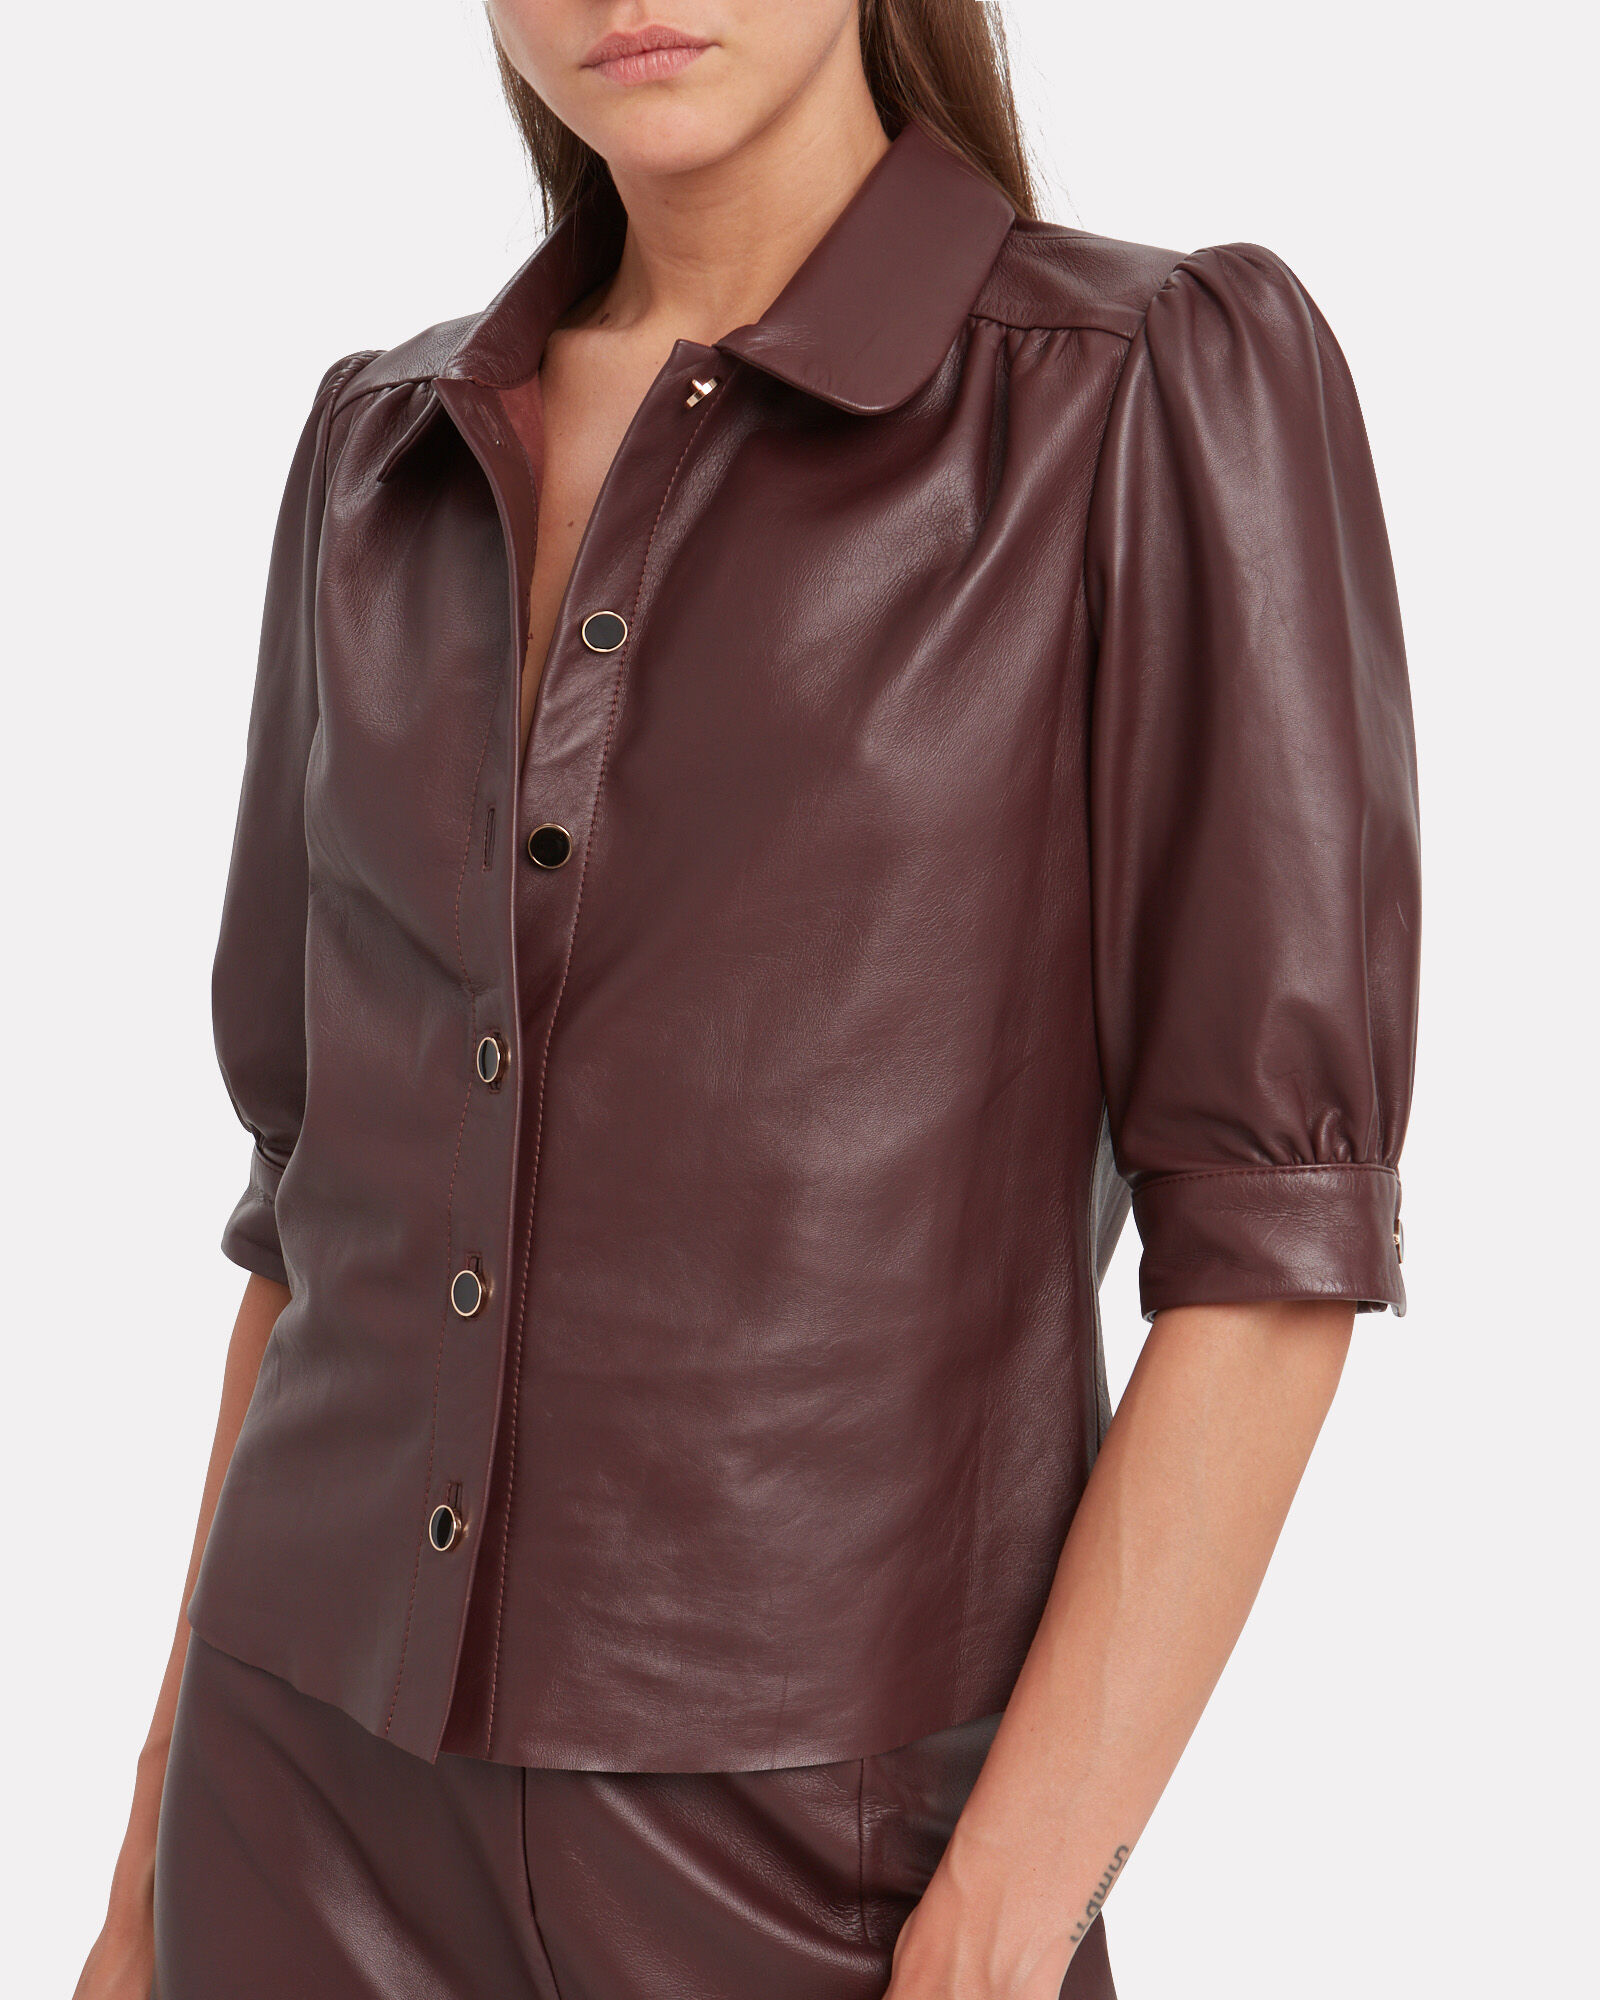 AliahGZ Leather Button Down Top, BURGUNDY, hi-res